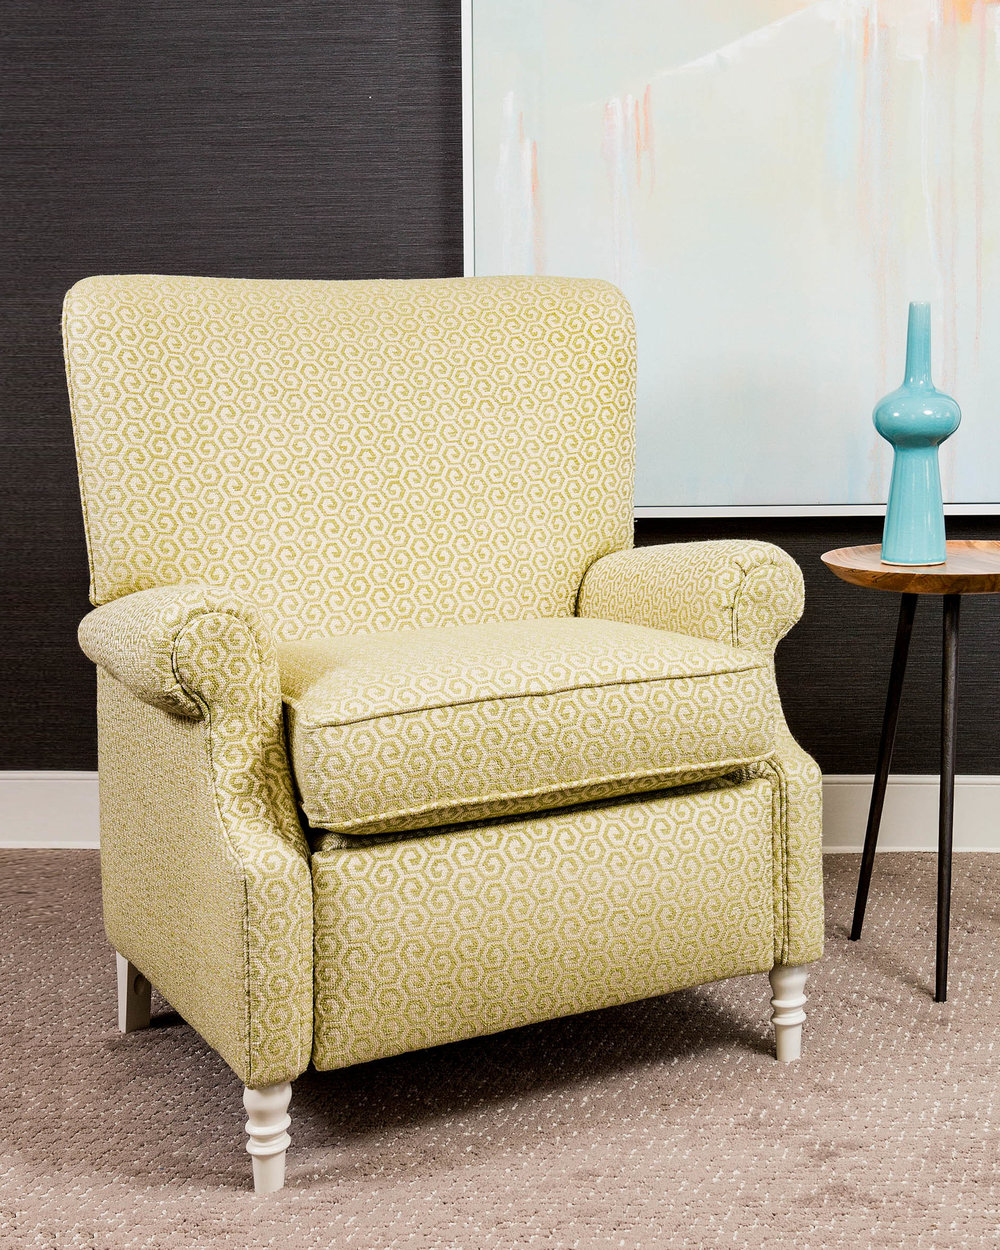 """Design must be comfortable to be successful. The Harper chair joins our Nestology collection for 2019 because beneath its classic clubby good looks a recliner waits to offer comfort with the touch of a button."" - Paul Miller, Lookbook 2019"